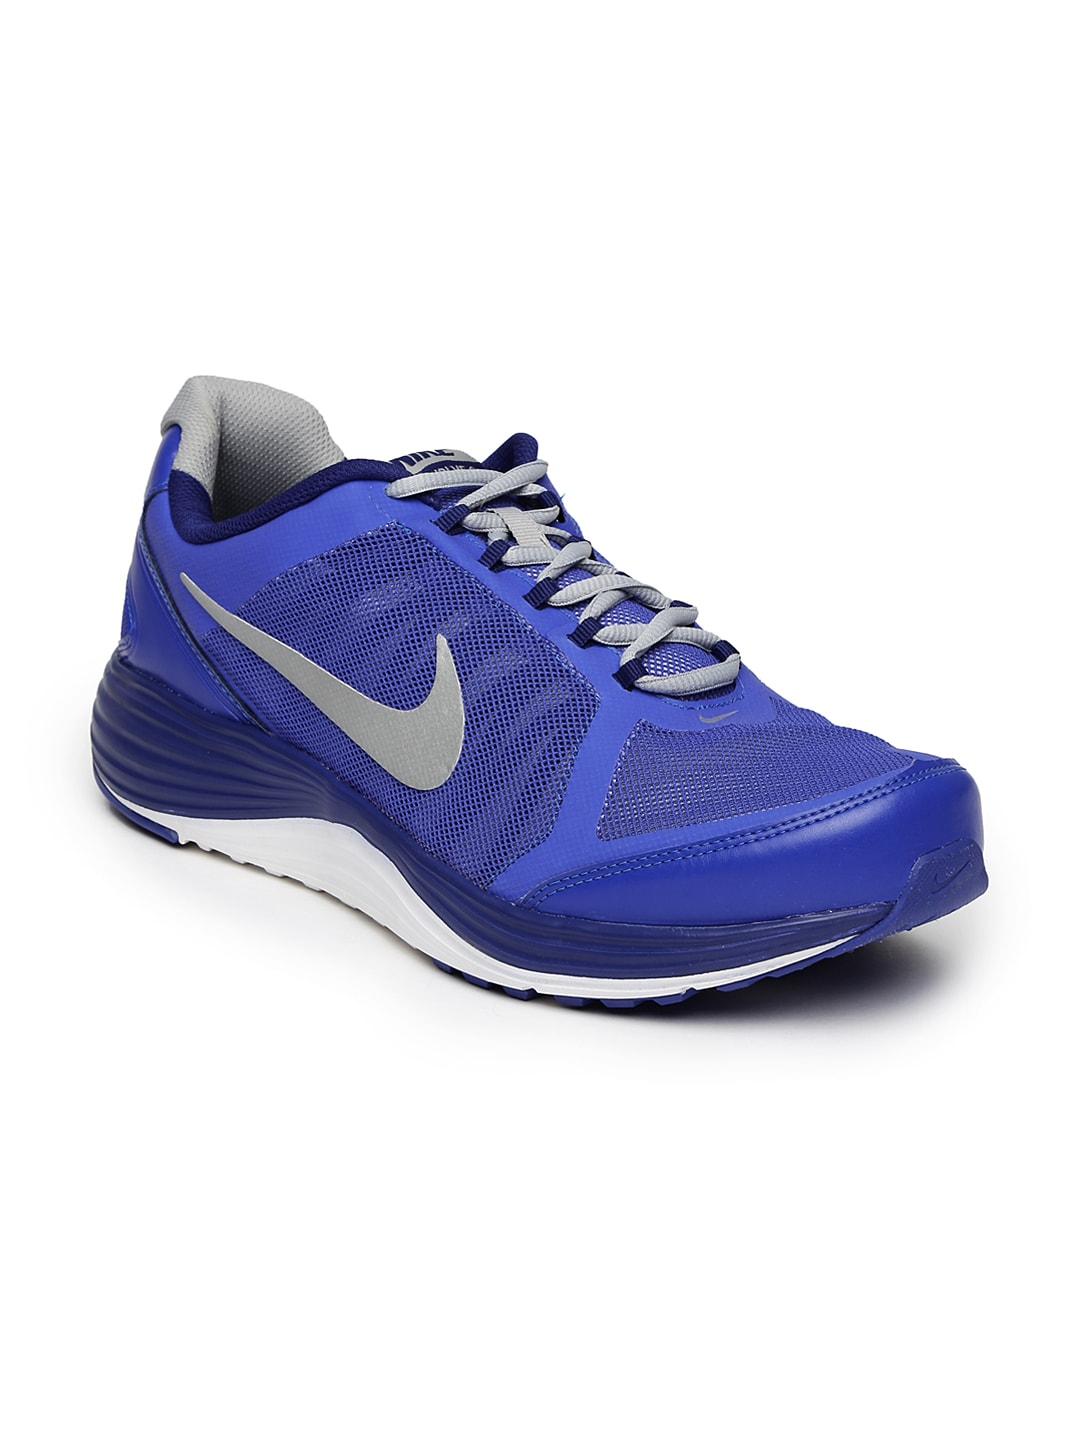 Nike Emerge  Navy Blue Running Shoes